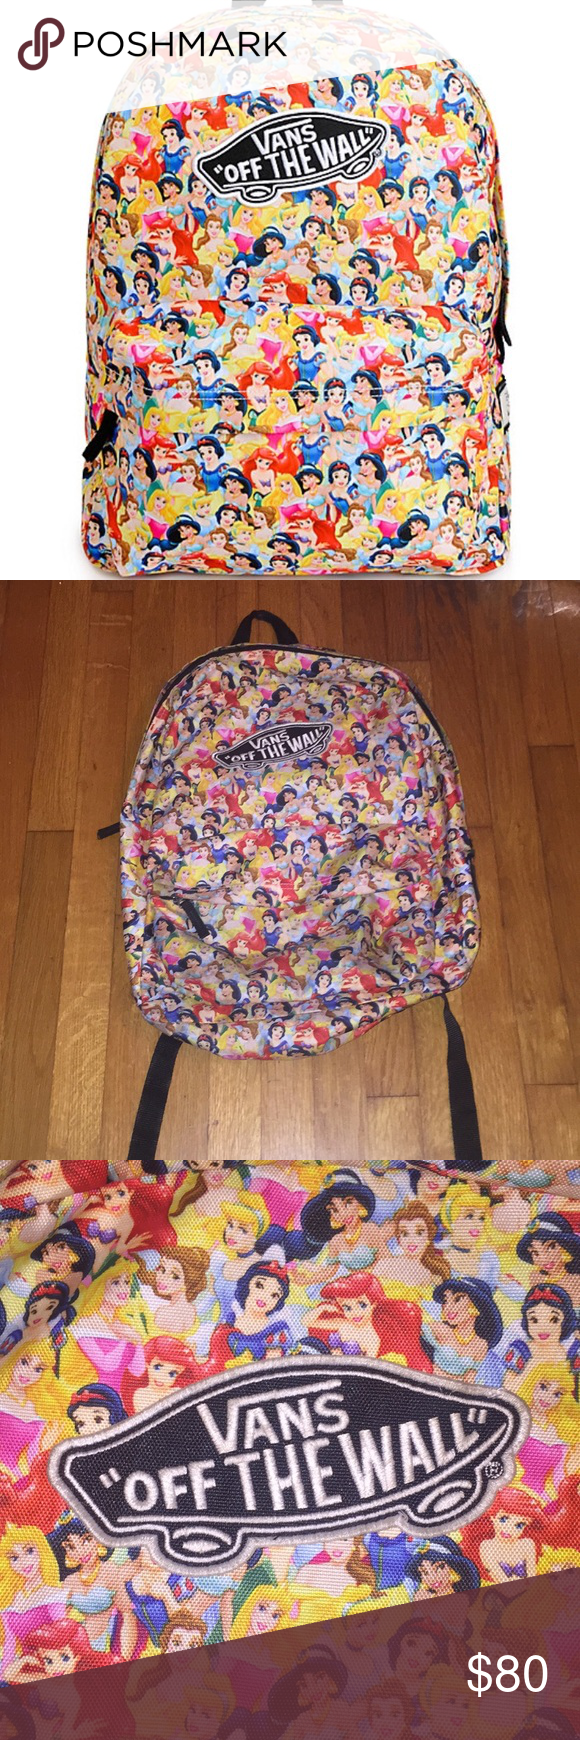 6fcb27bb3b5b Vans disney princess backpack vans disney princess backpack condition  gently used png 580x1740 Vans princess backpack